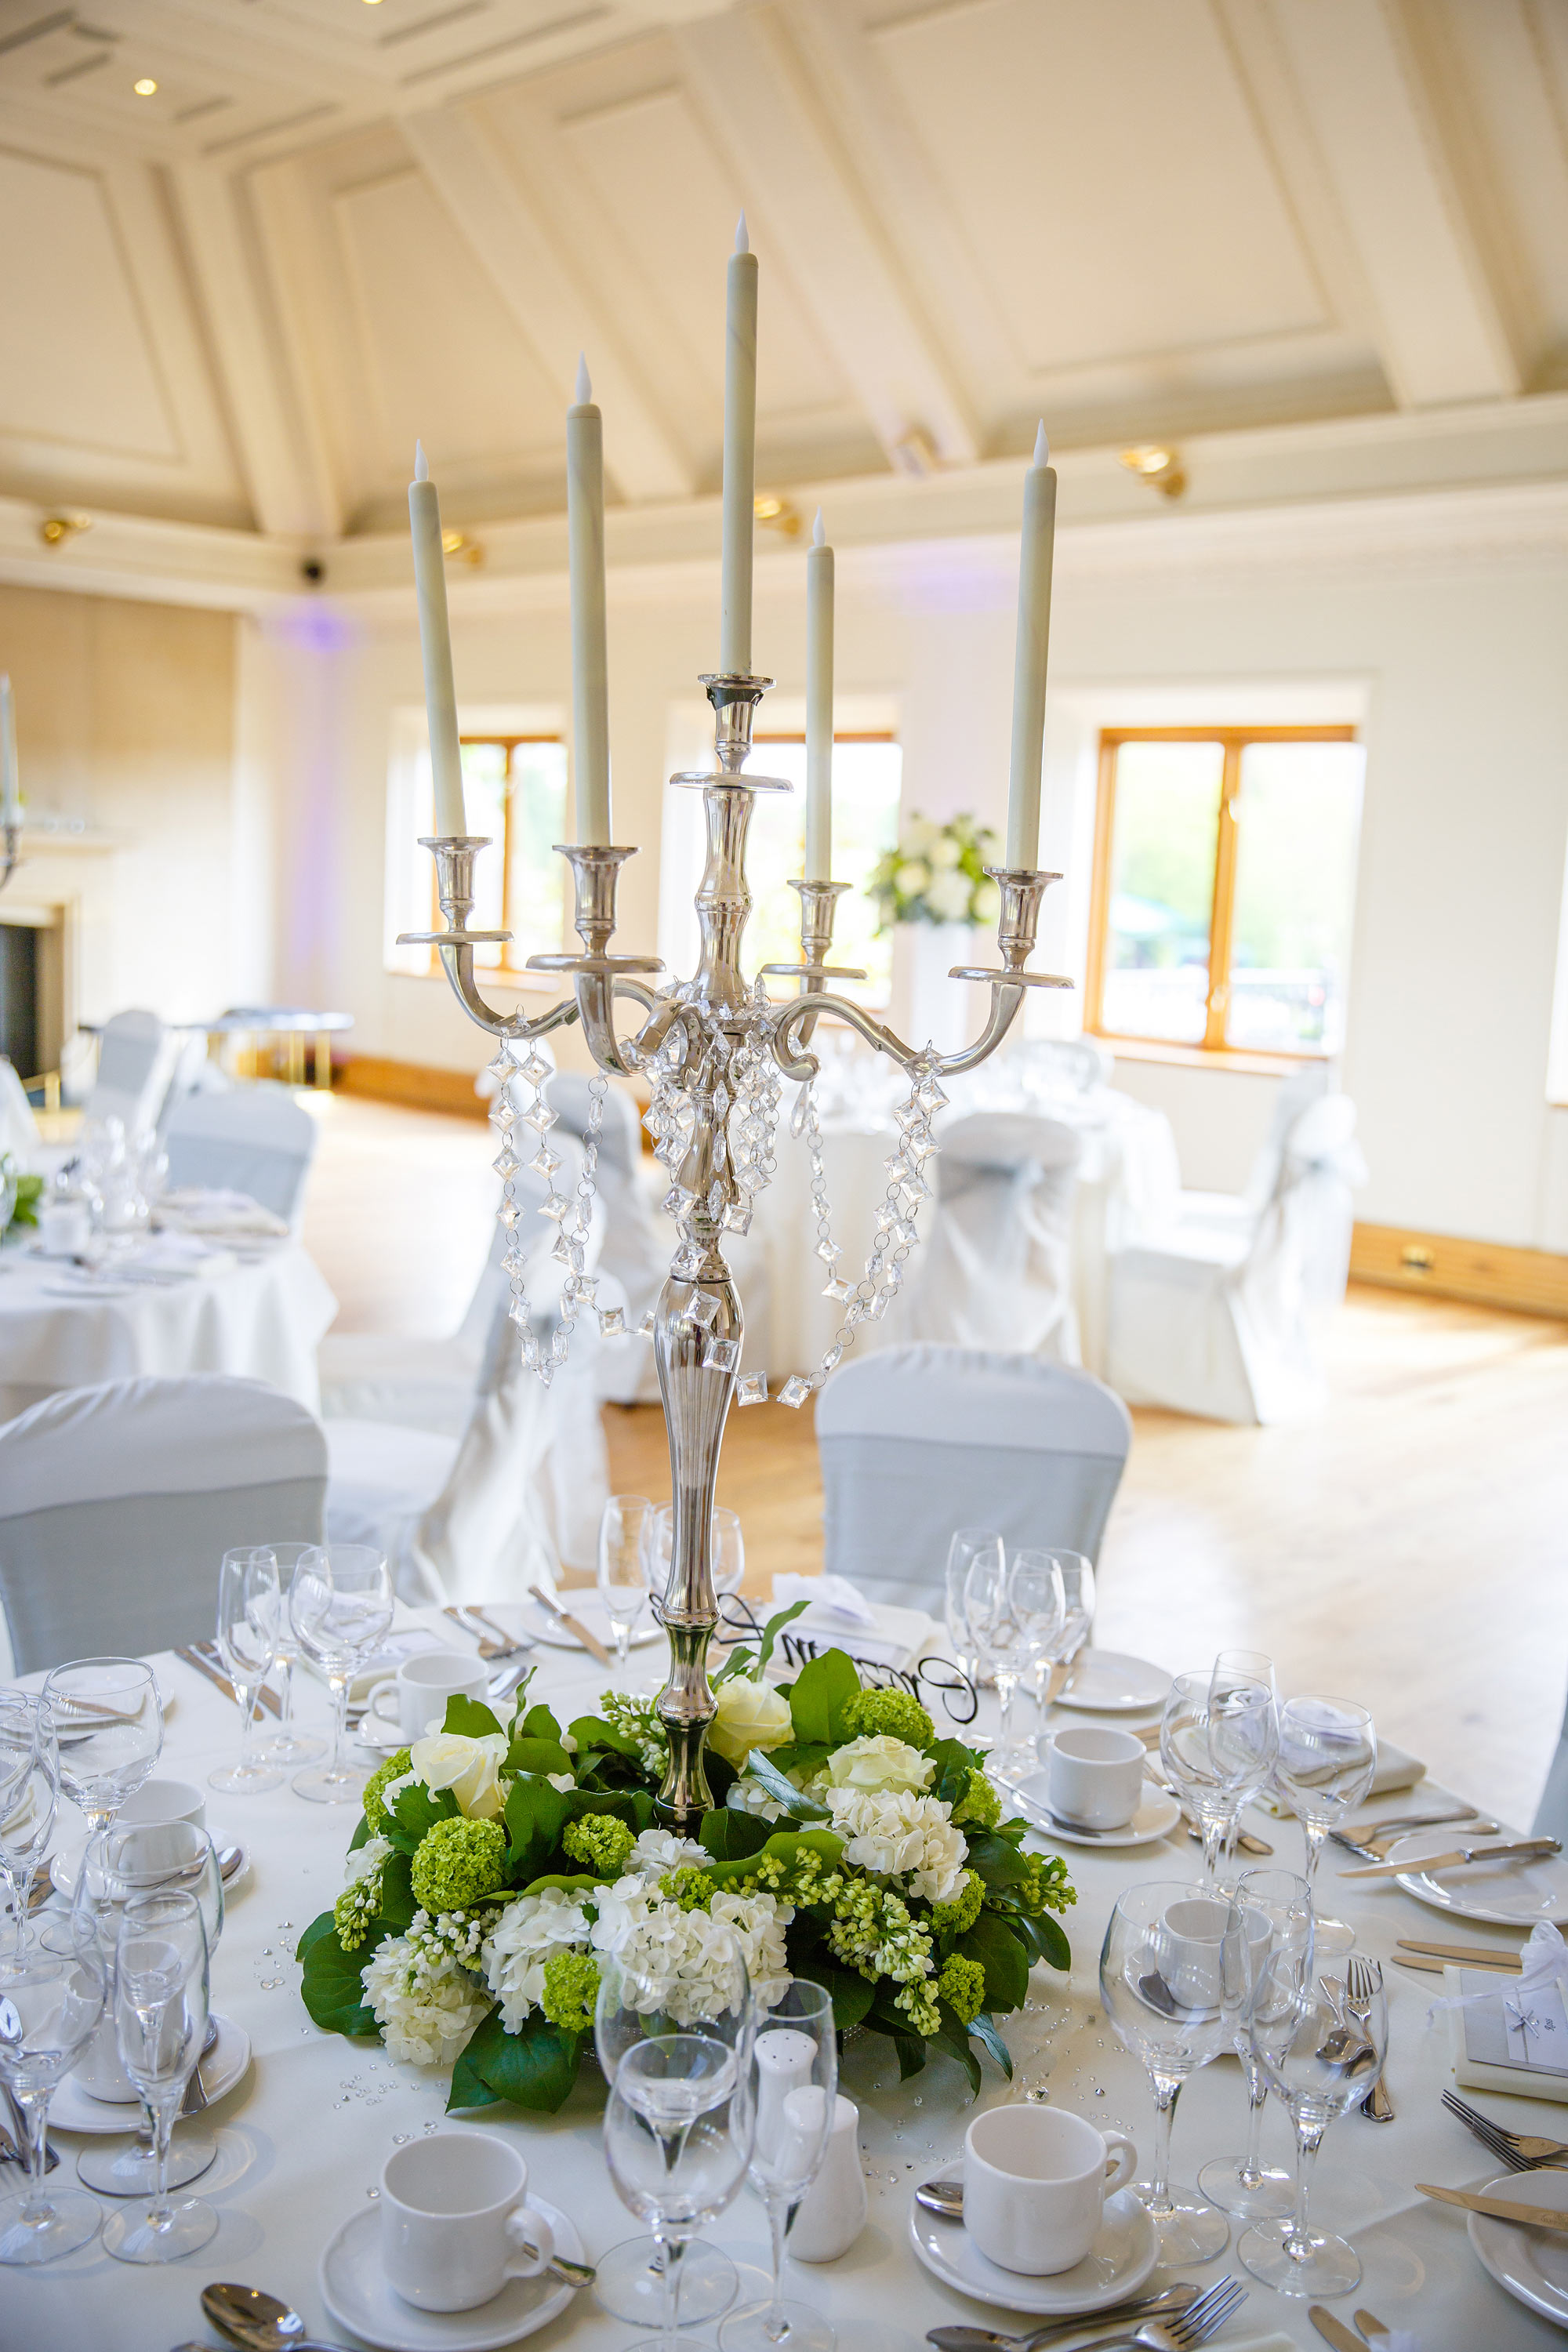 Stock Brook Country Club Wedding candlebra